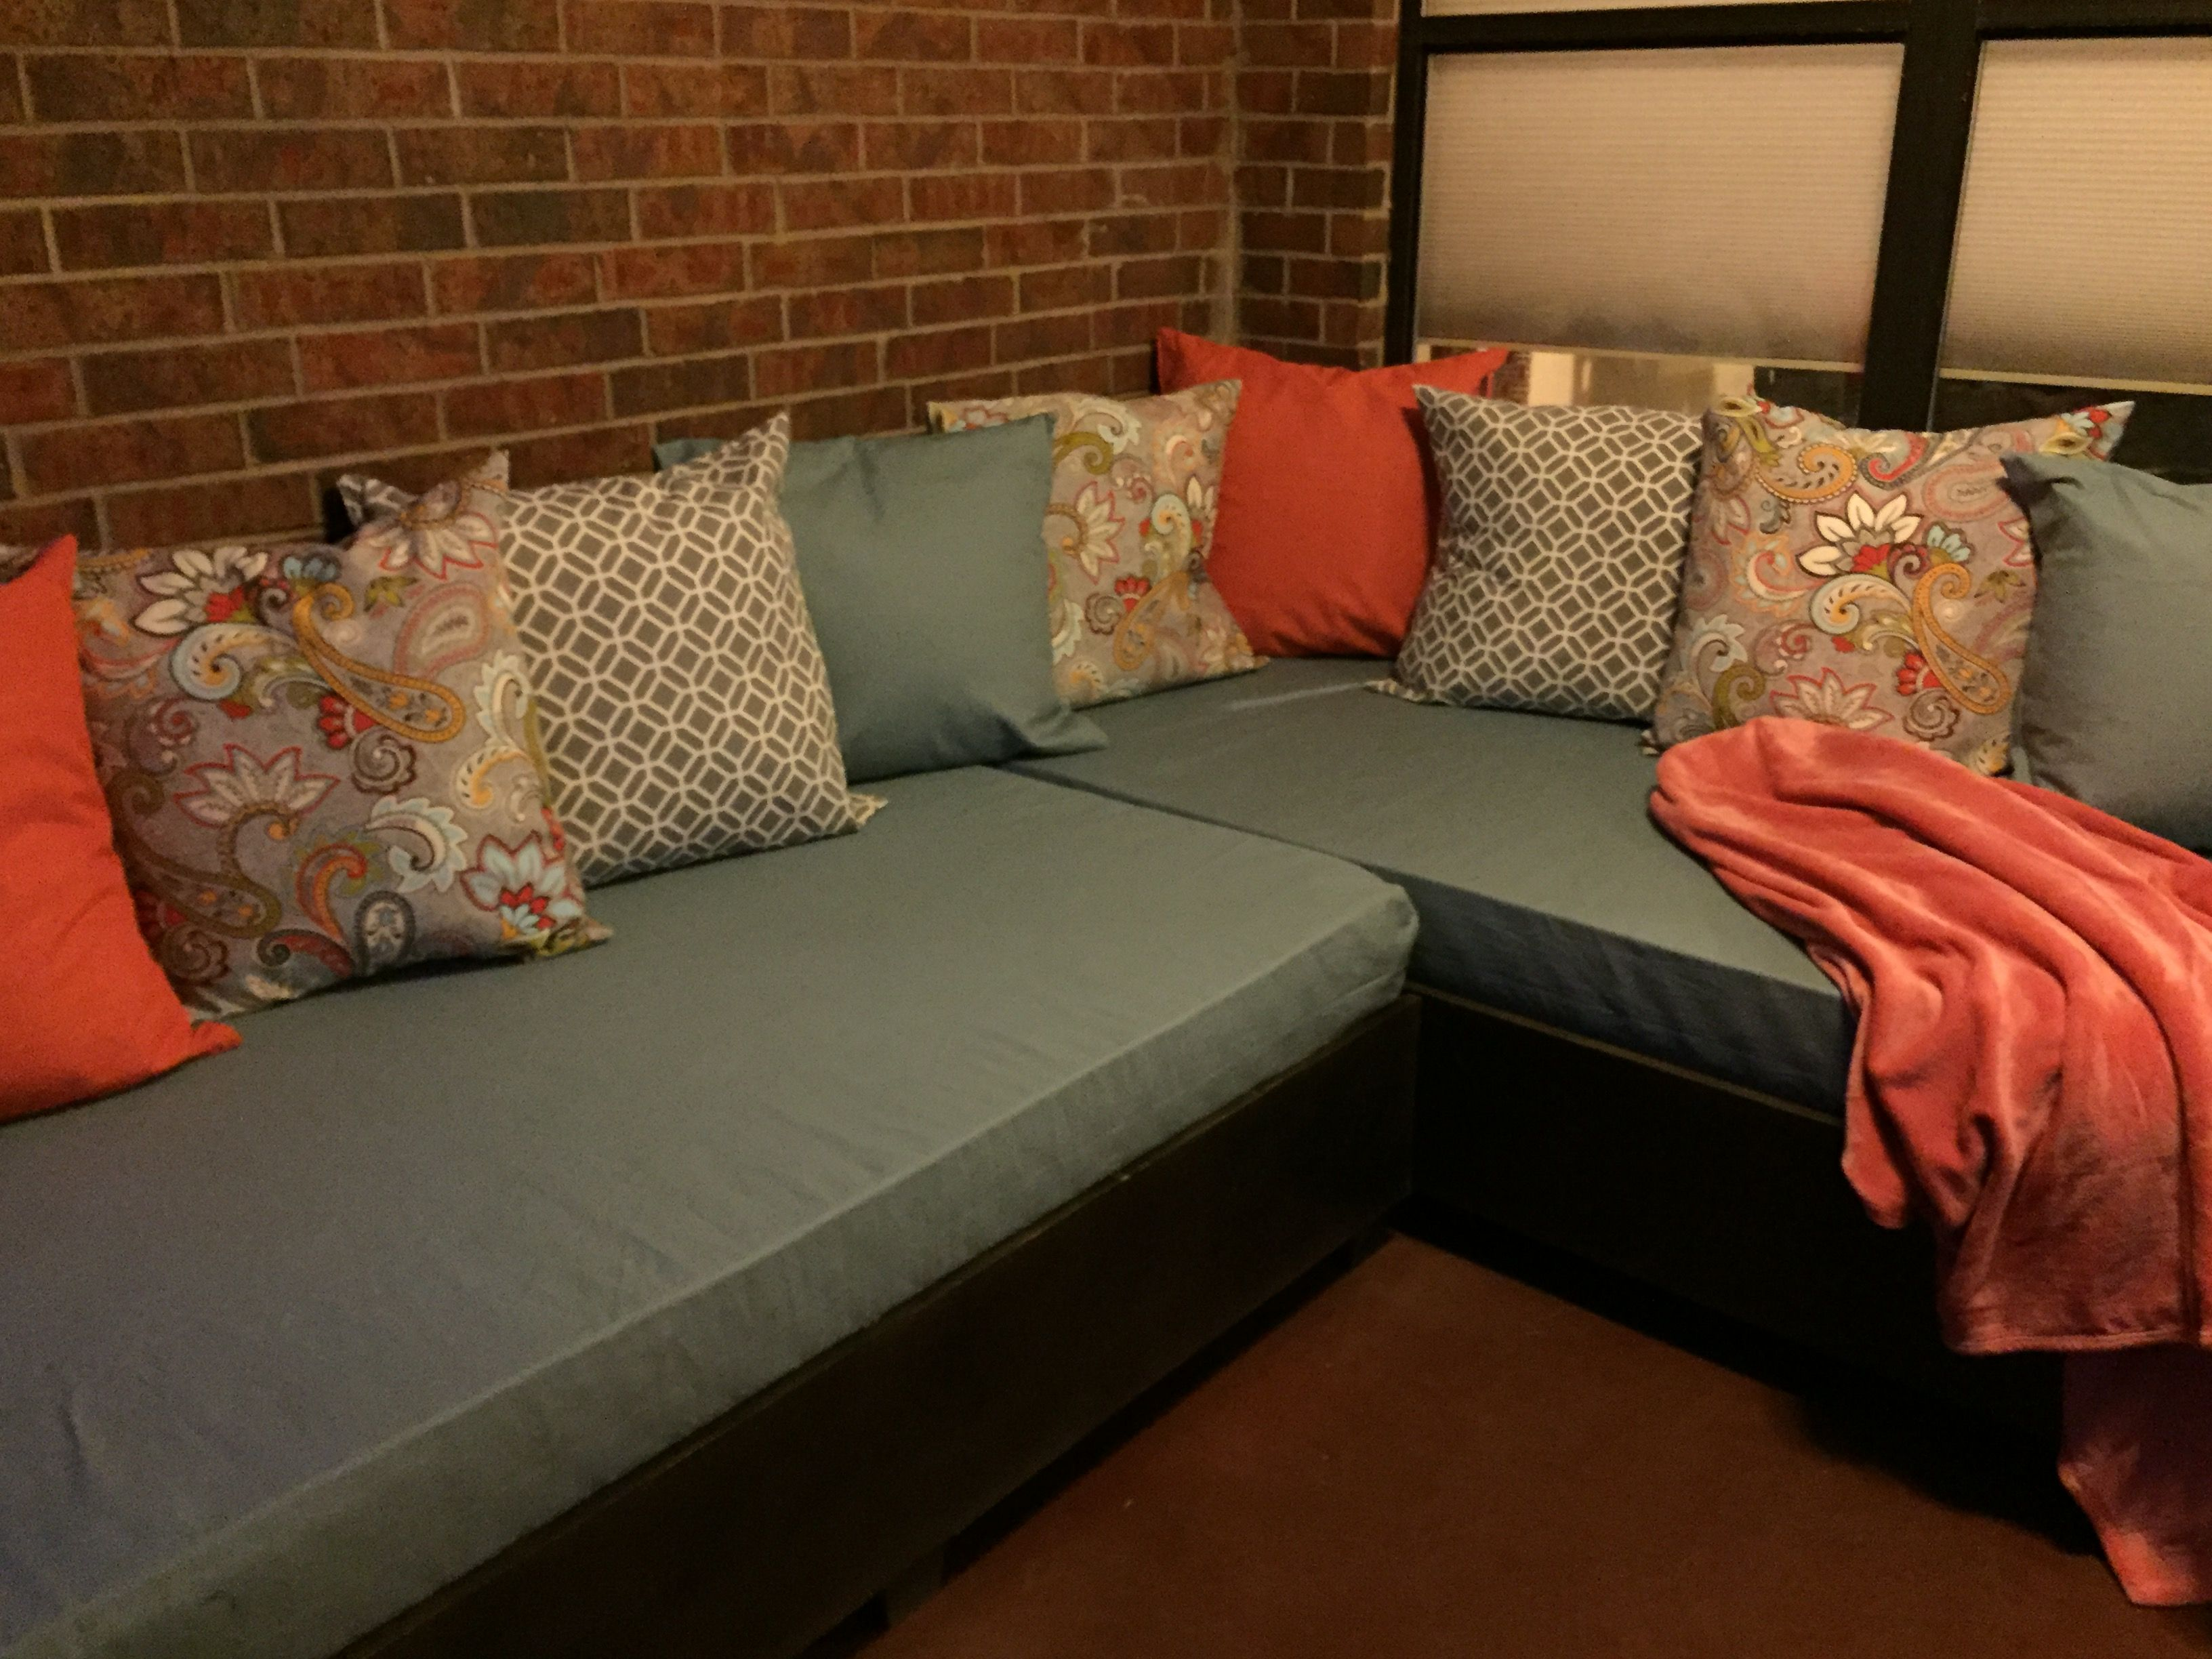 diy daybed sofas cheapest leather corner pin by deangela gaymon on for the home in 2019 pinterest